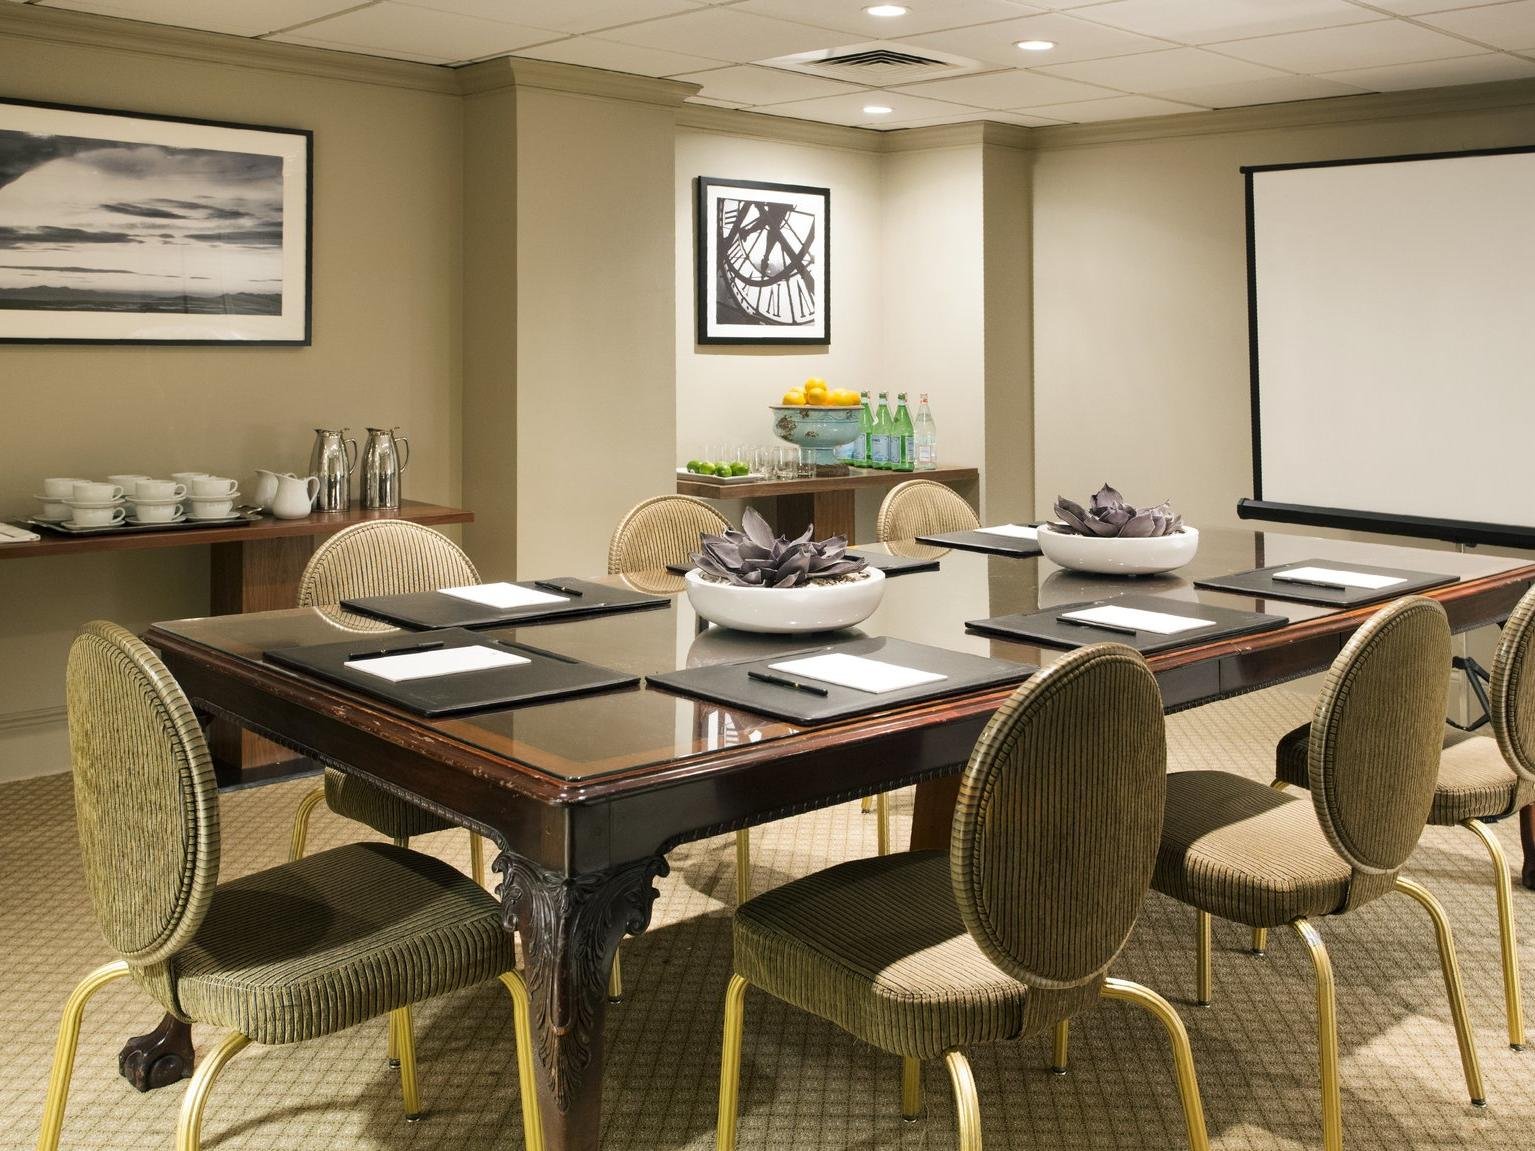 Meeting room with light colored walls and table set for 7